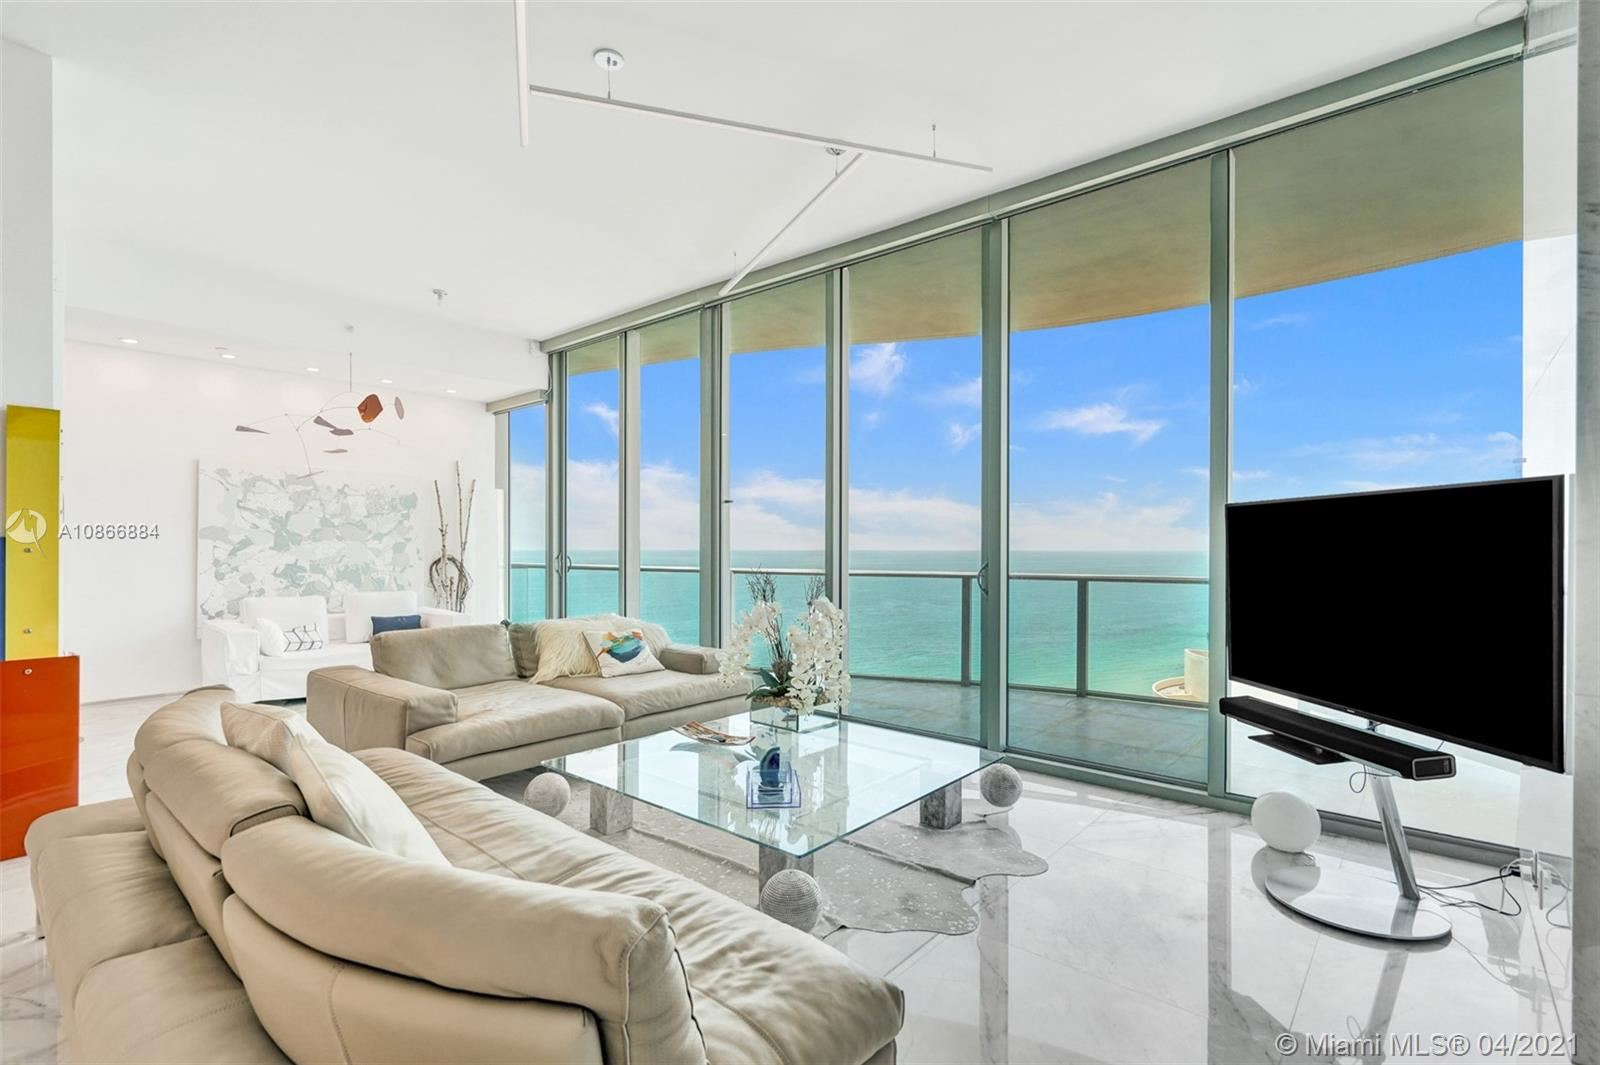 17475 Collins Ave #2502, Sunny Isles, FL 33160 - #: A10866884